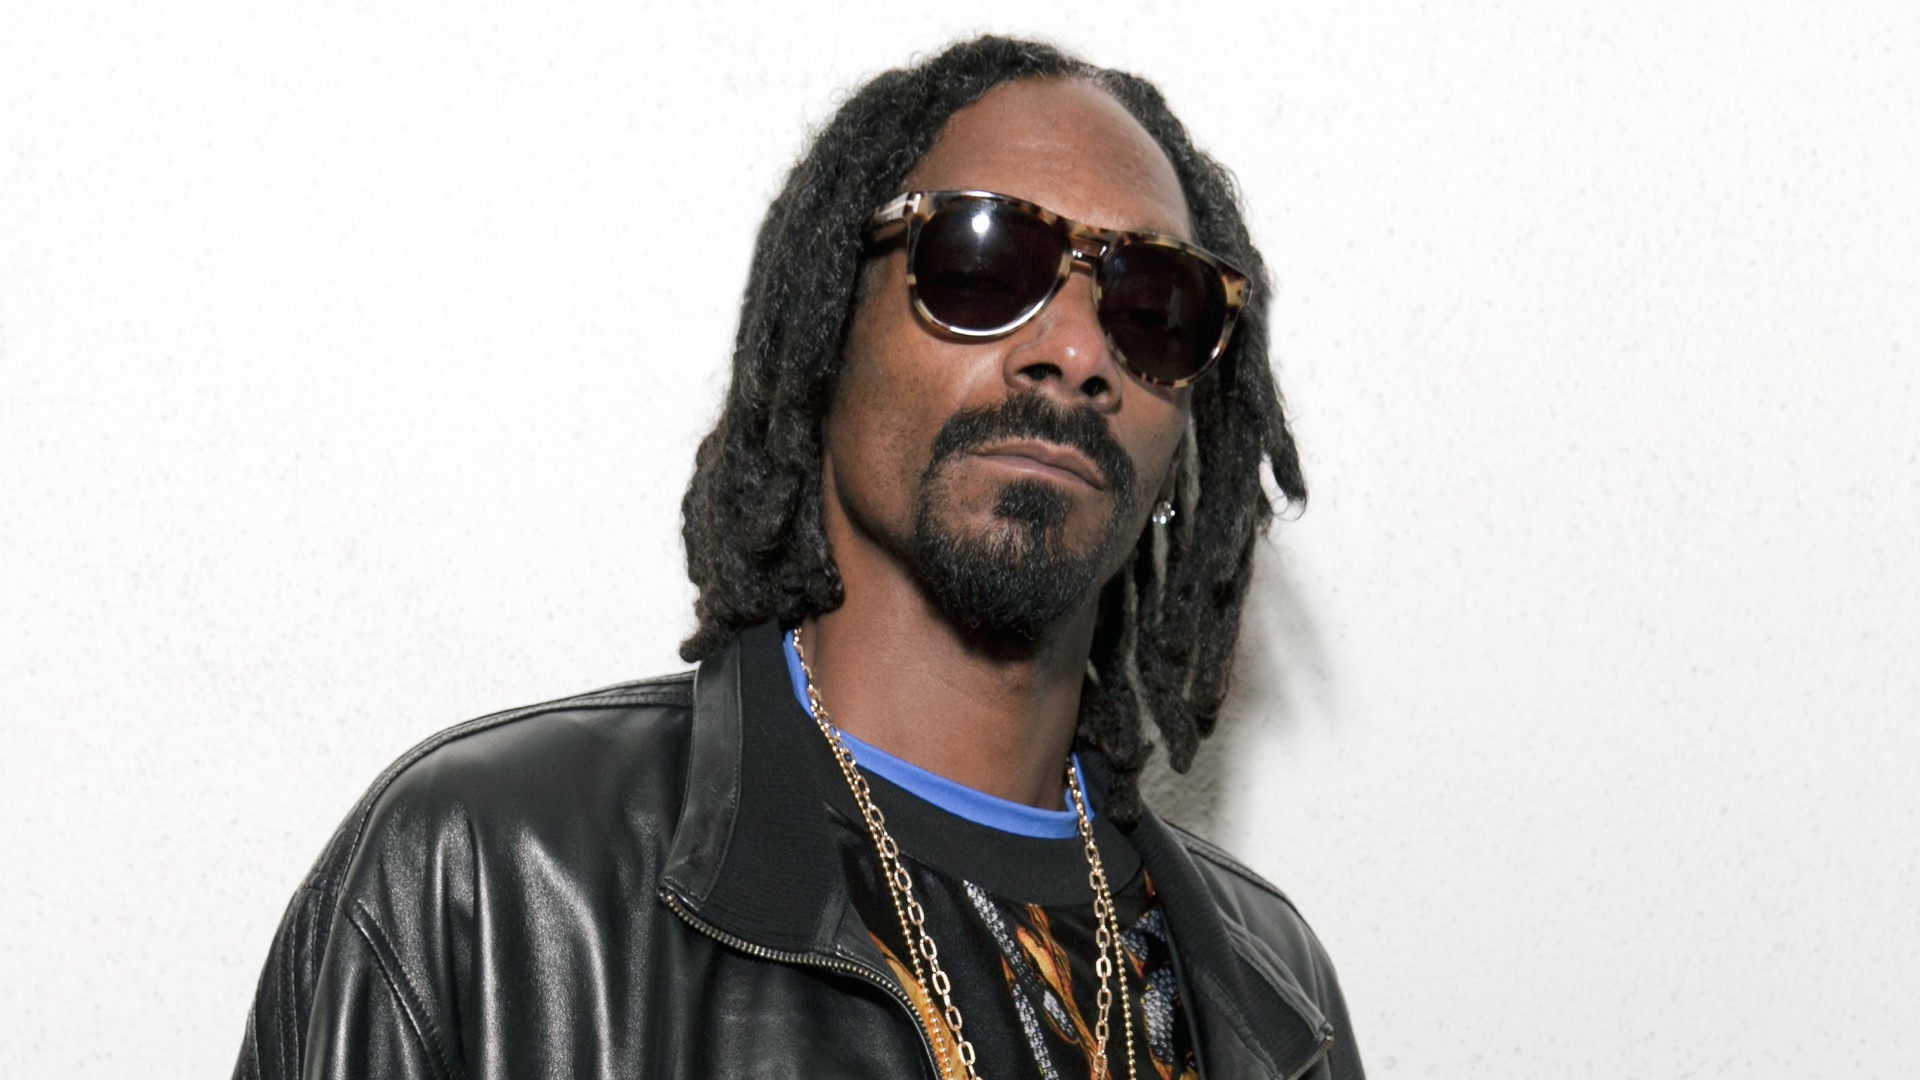 Snoop Dogg Wallpapers 66 Background Pictures